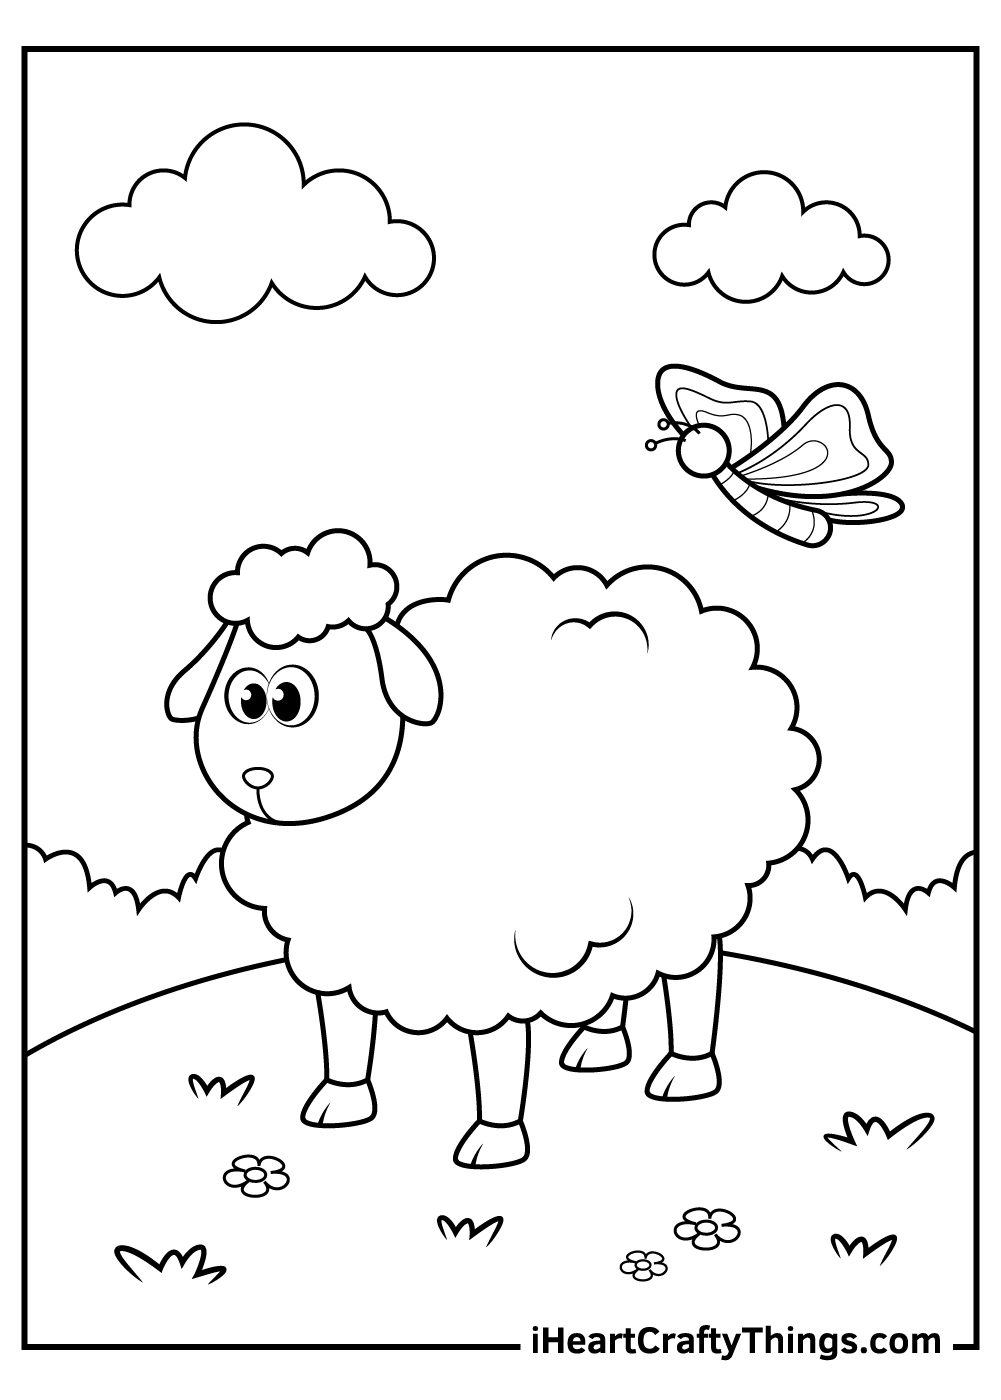 Printable Sheep Coloring Pages Updated 2021